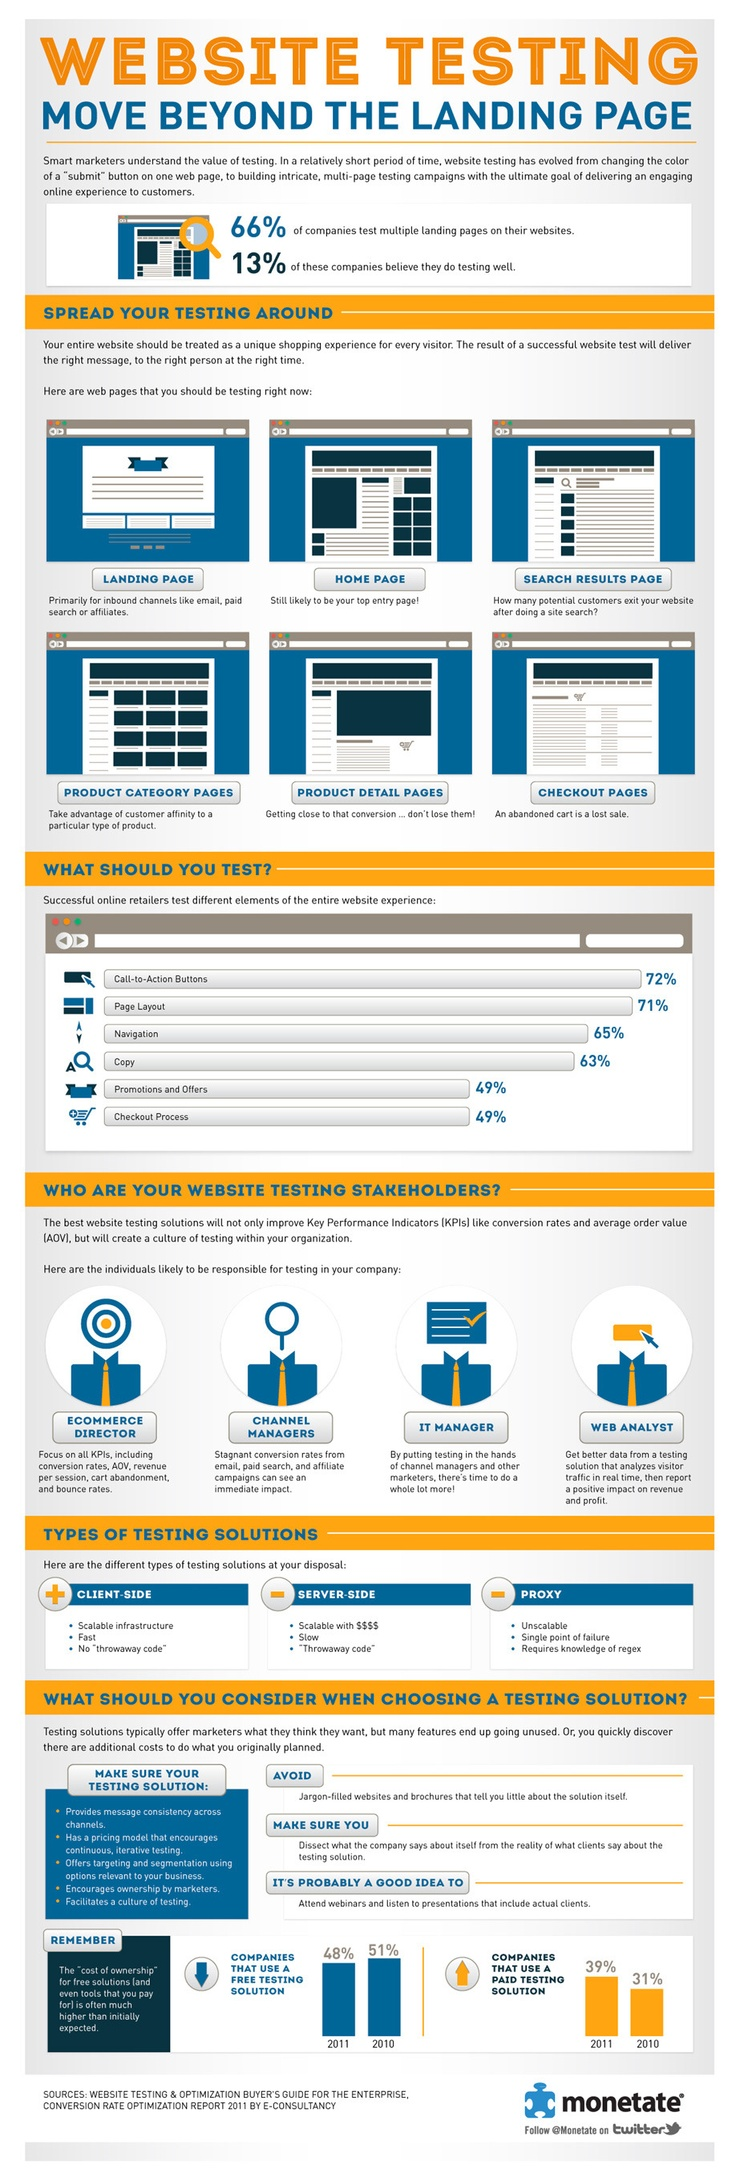 [INFOGRAPHIC] #Website Testing: Move Beyond the Landing Page